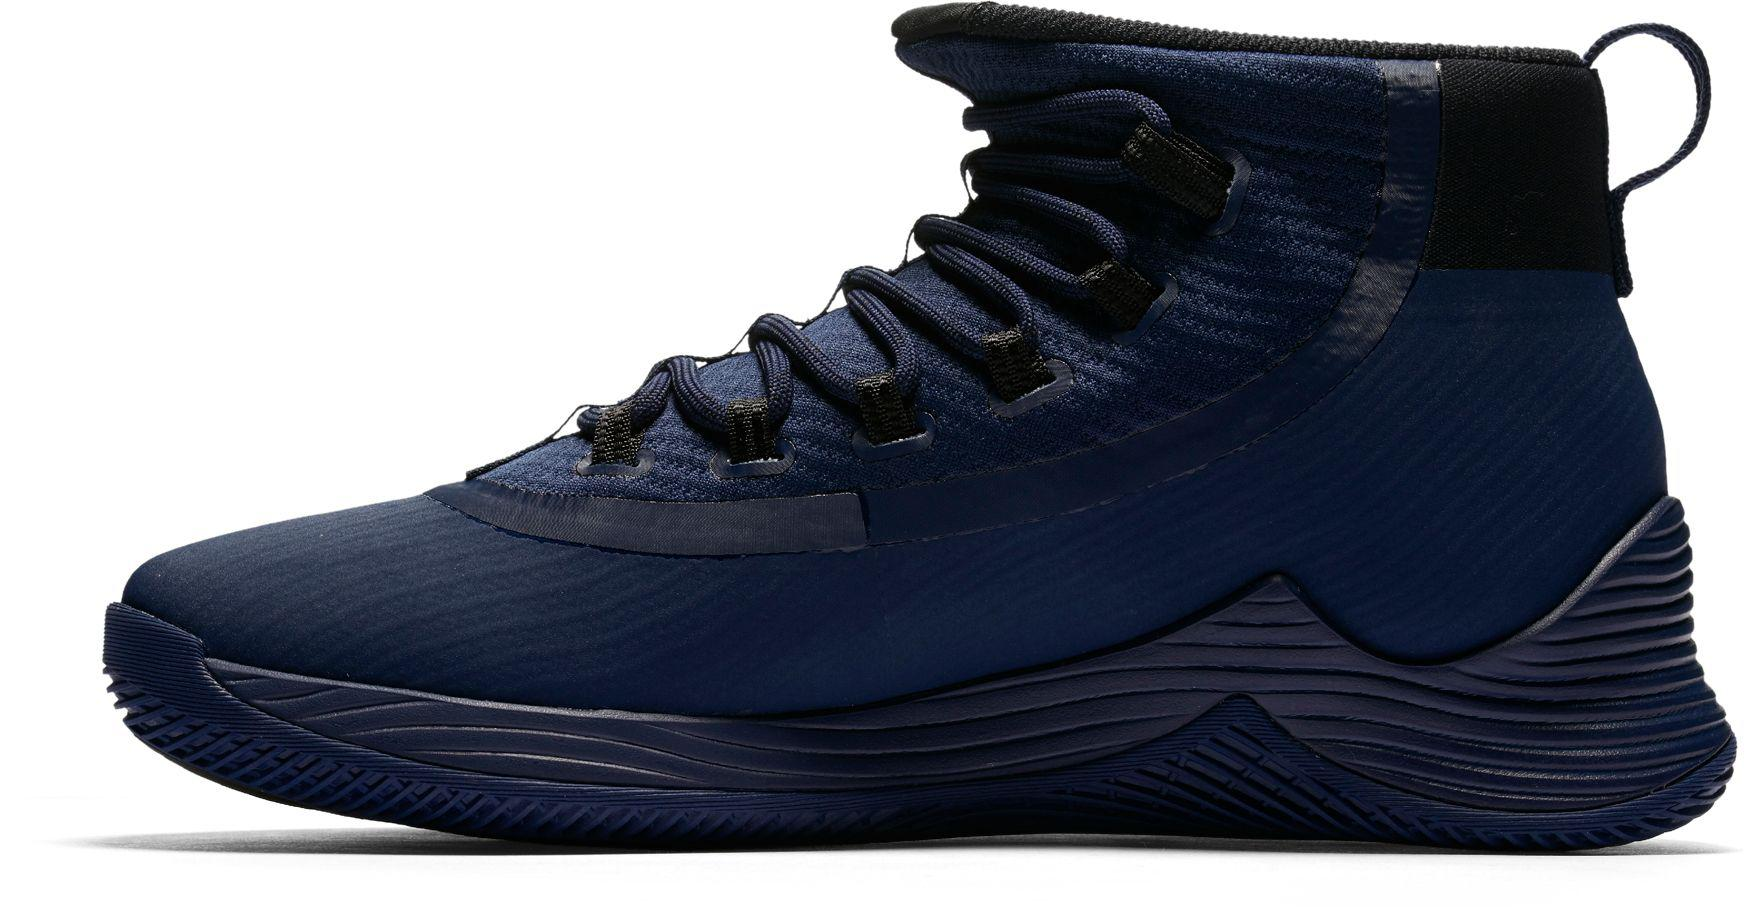 93a32254ac8bf2 Lyst - Nike Ultra Fly 2 Tb Basketball Shoes in Blue for Men